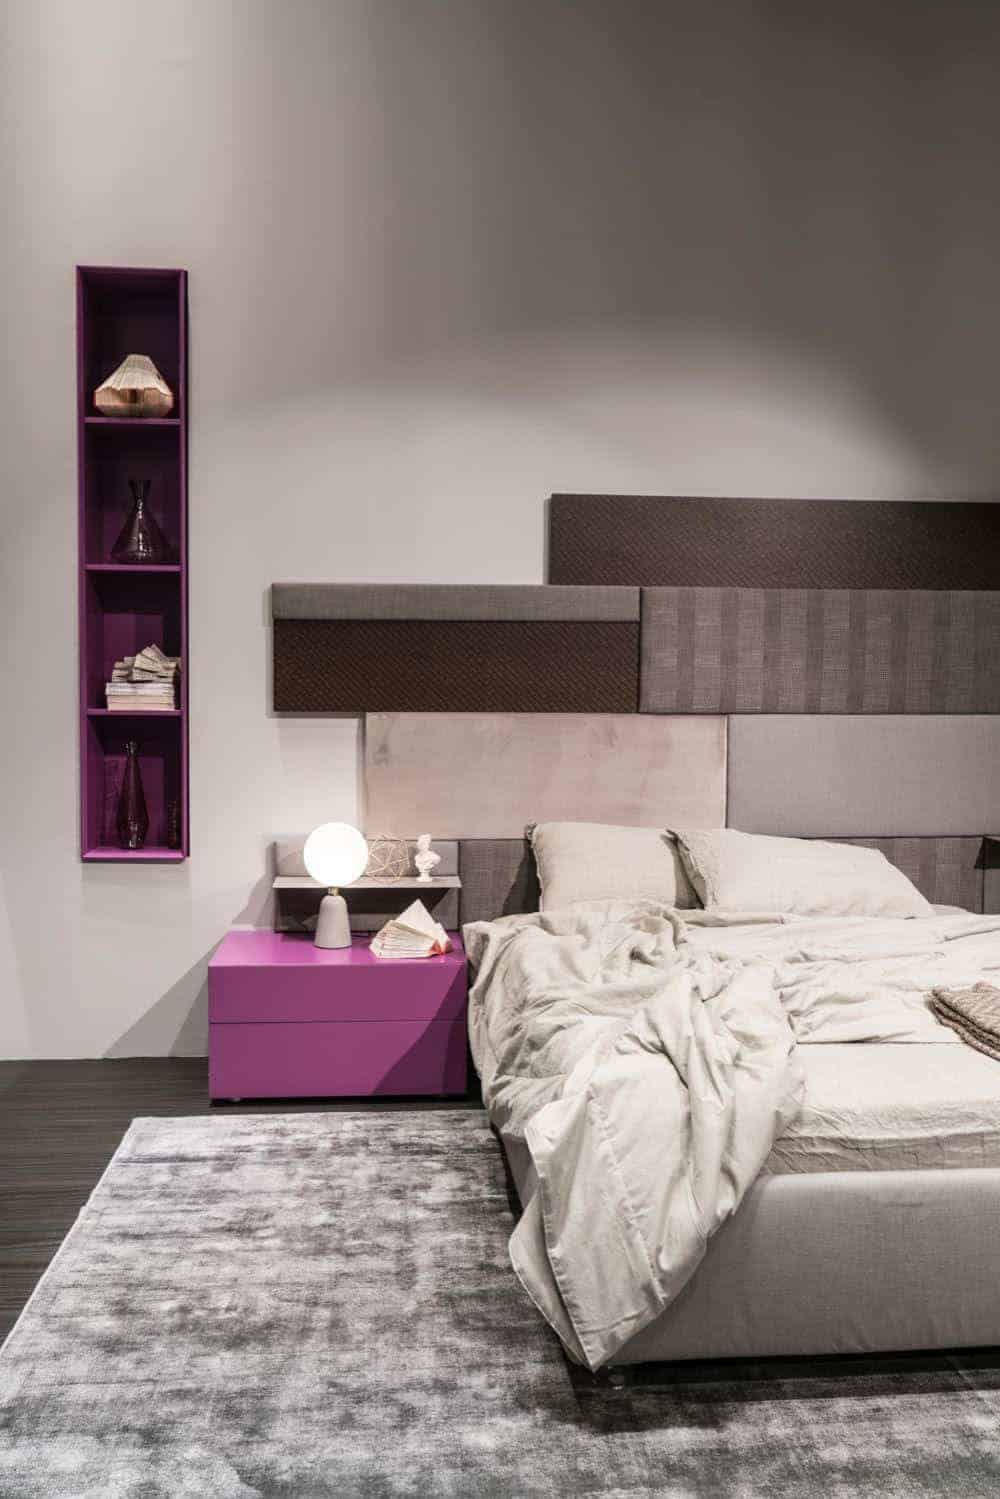 Pink modern nighstands and wall storage